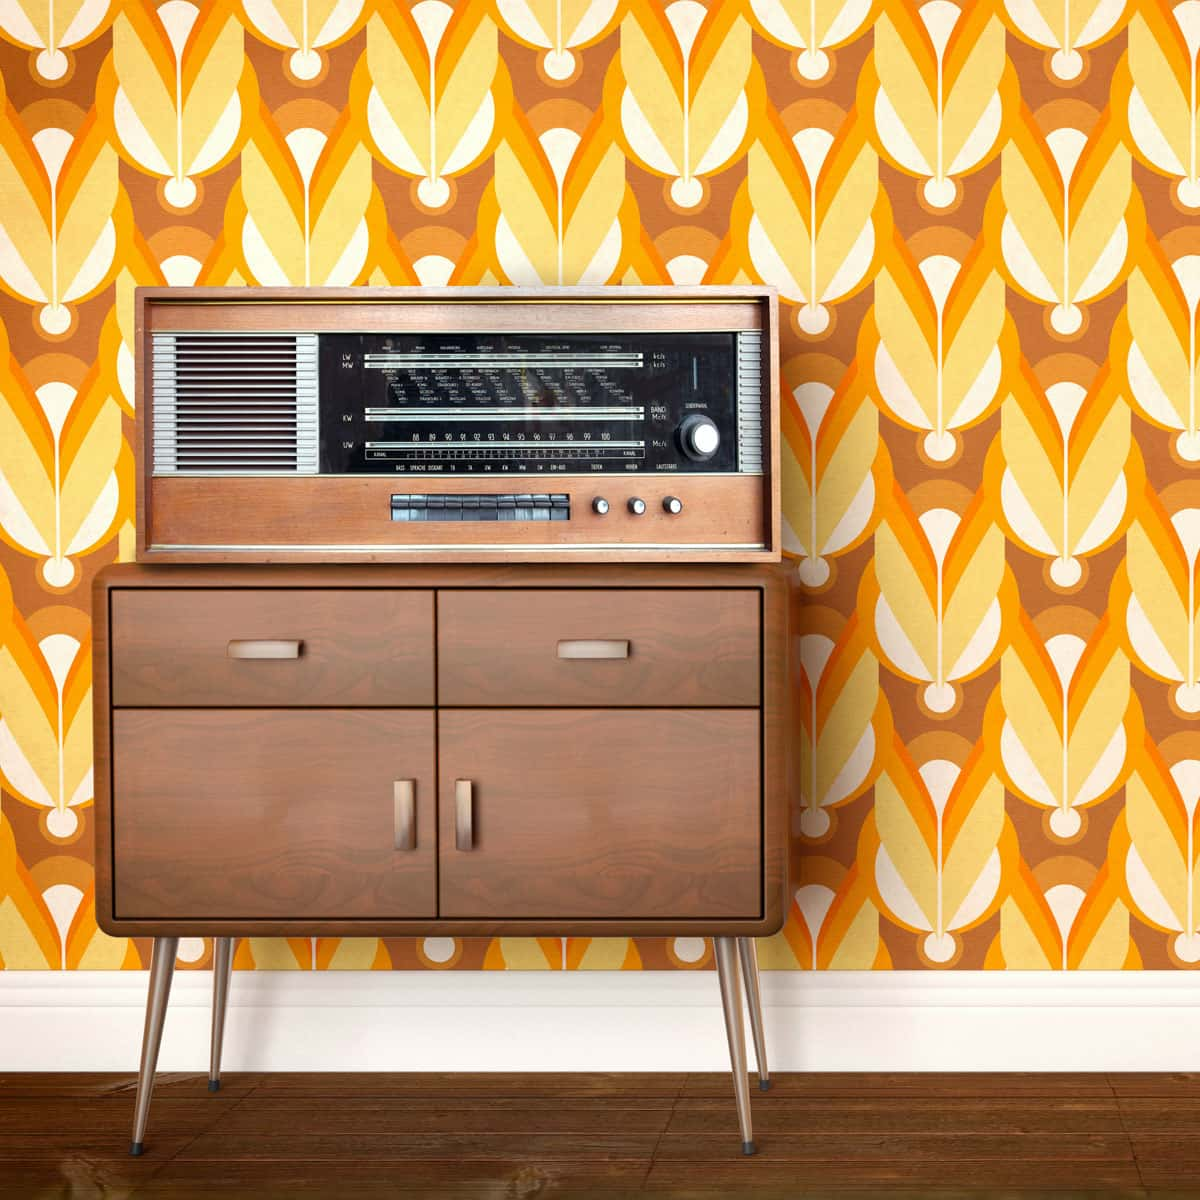 70s style side table against retro patterned wallpaper